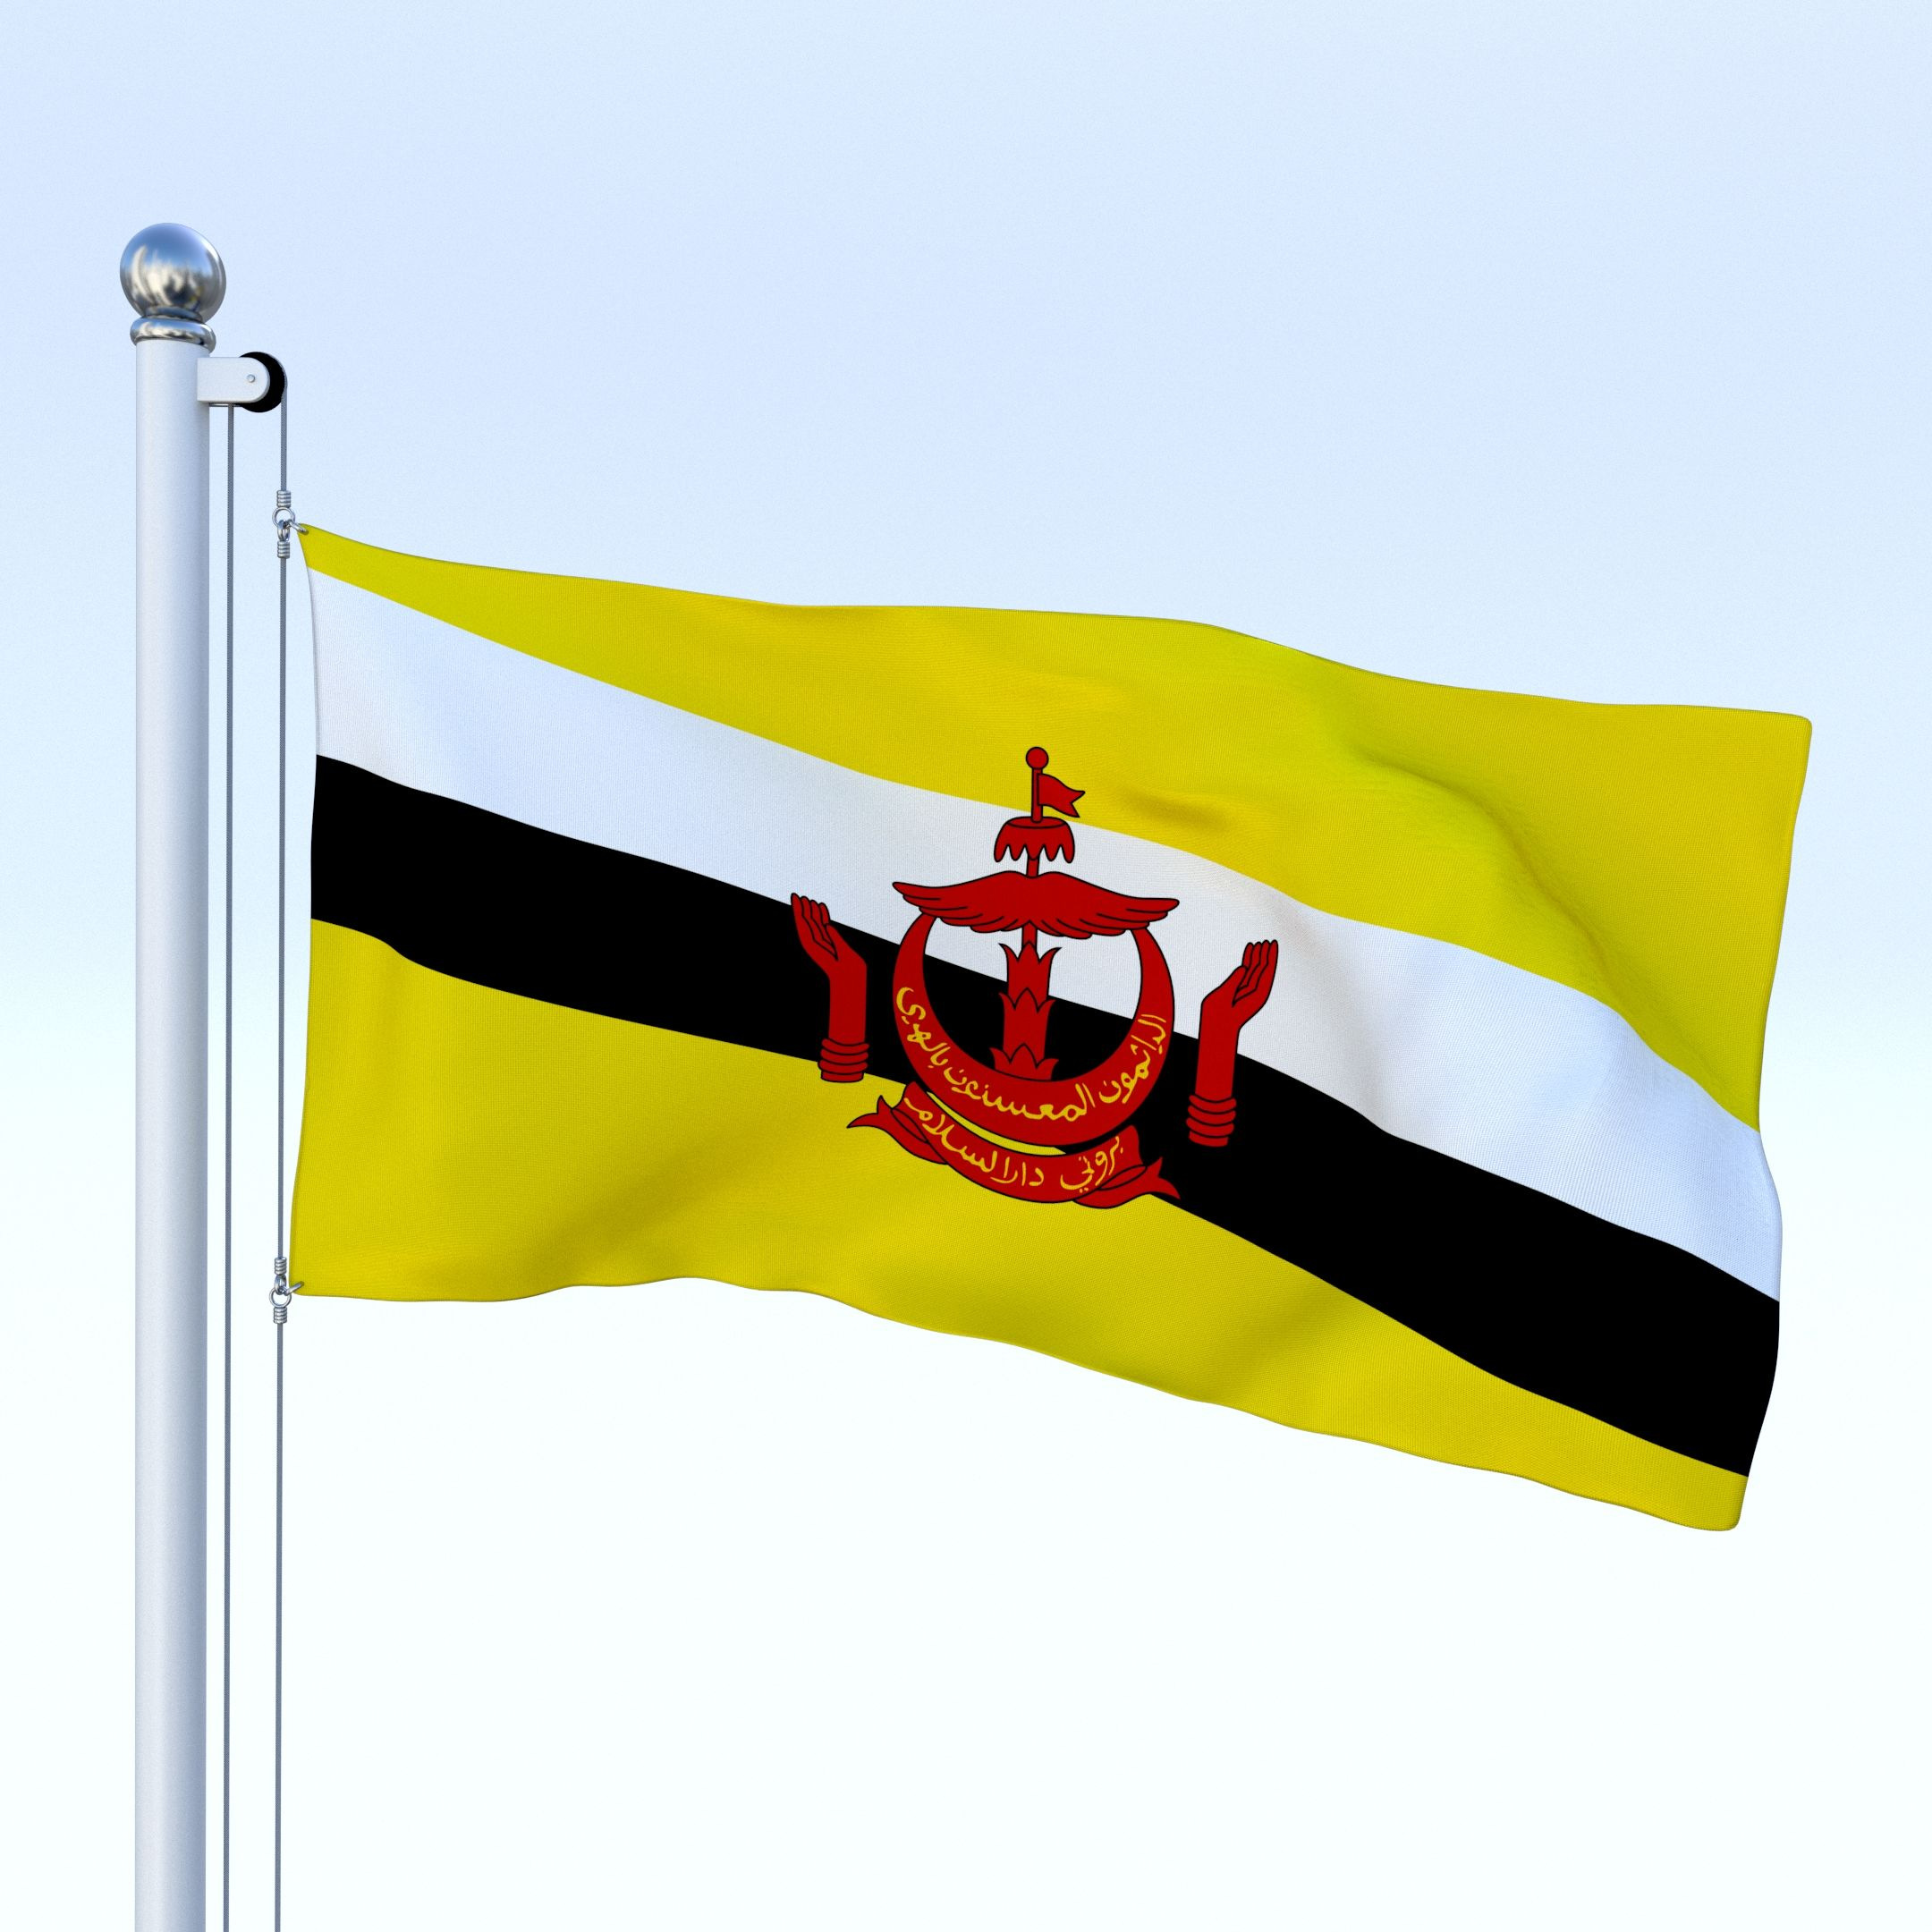 Animated Brunei Darussalam Flag European Flags Asian Flags Animation